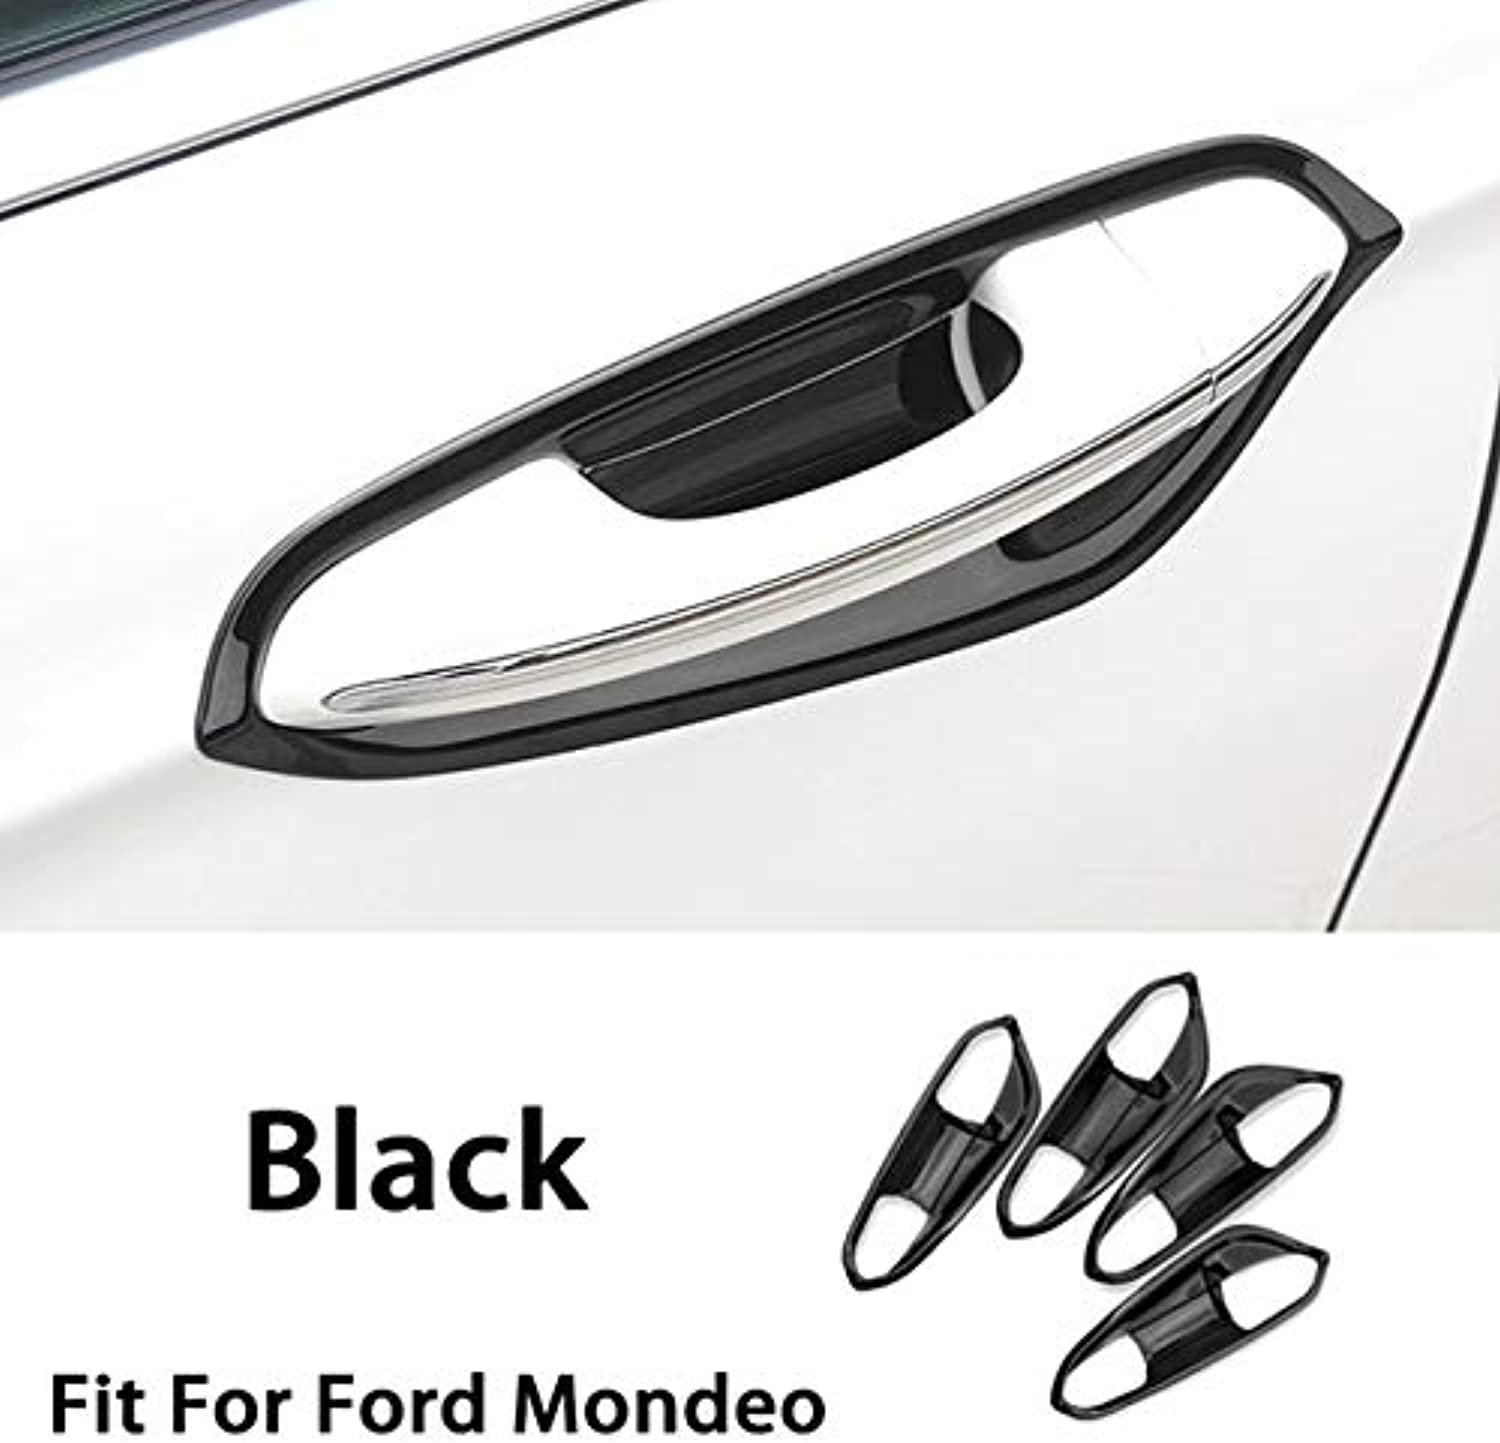 Auto Car Styling Stainless Steel Stickers for Ford Mondeo MK5 2017 2018 Exterior Door Handle Bowl Frame Covers Accessories  (color Name  8pcs Frame Black)